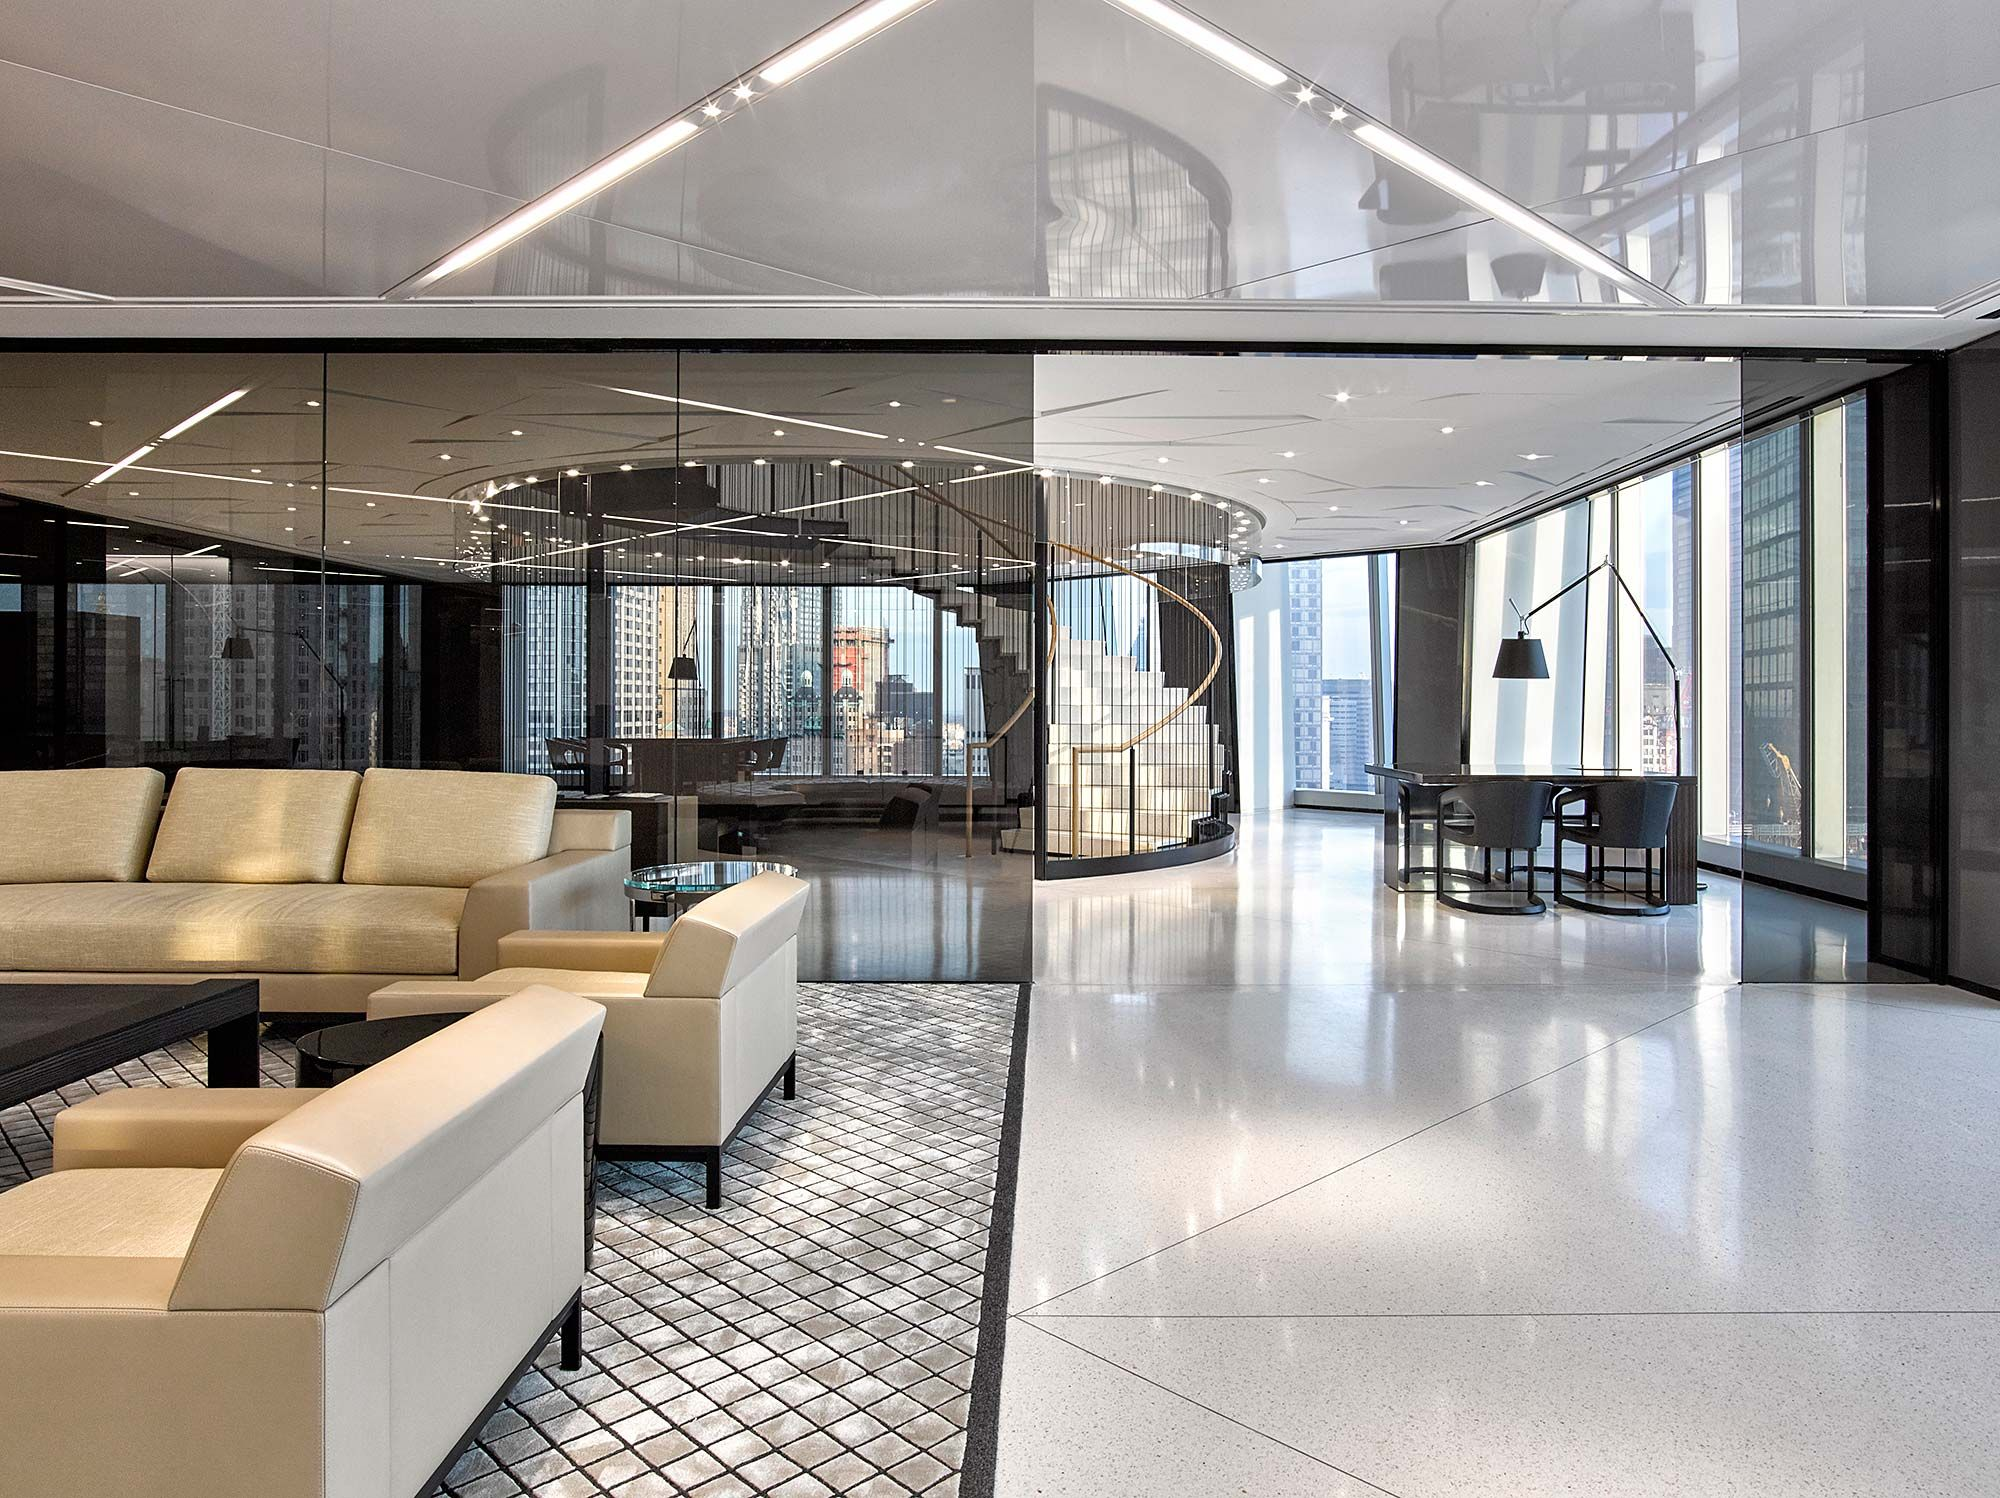 In a transformational design and fitout over 25 floors